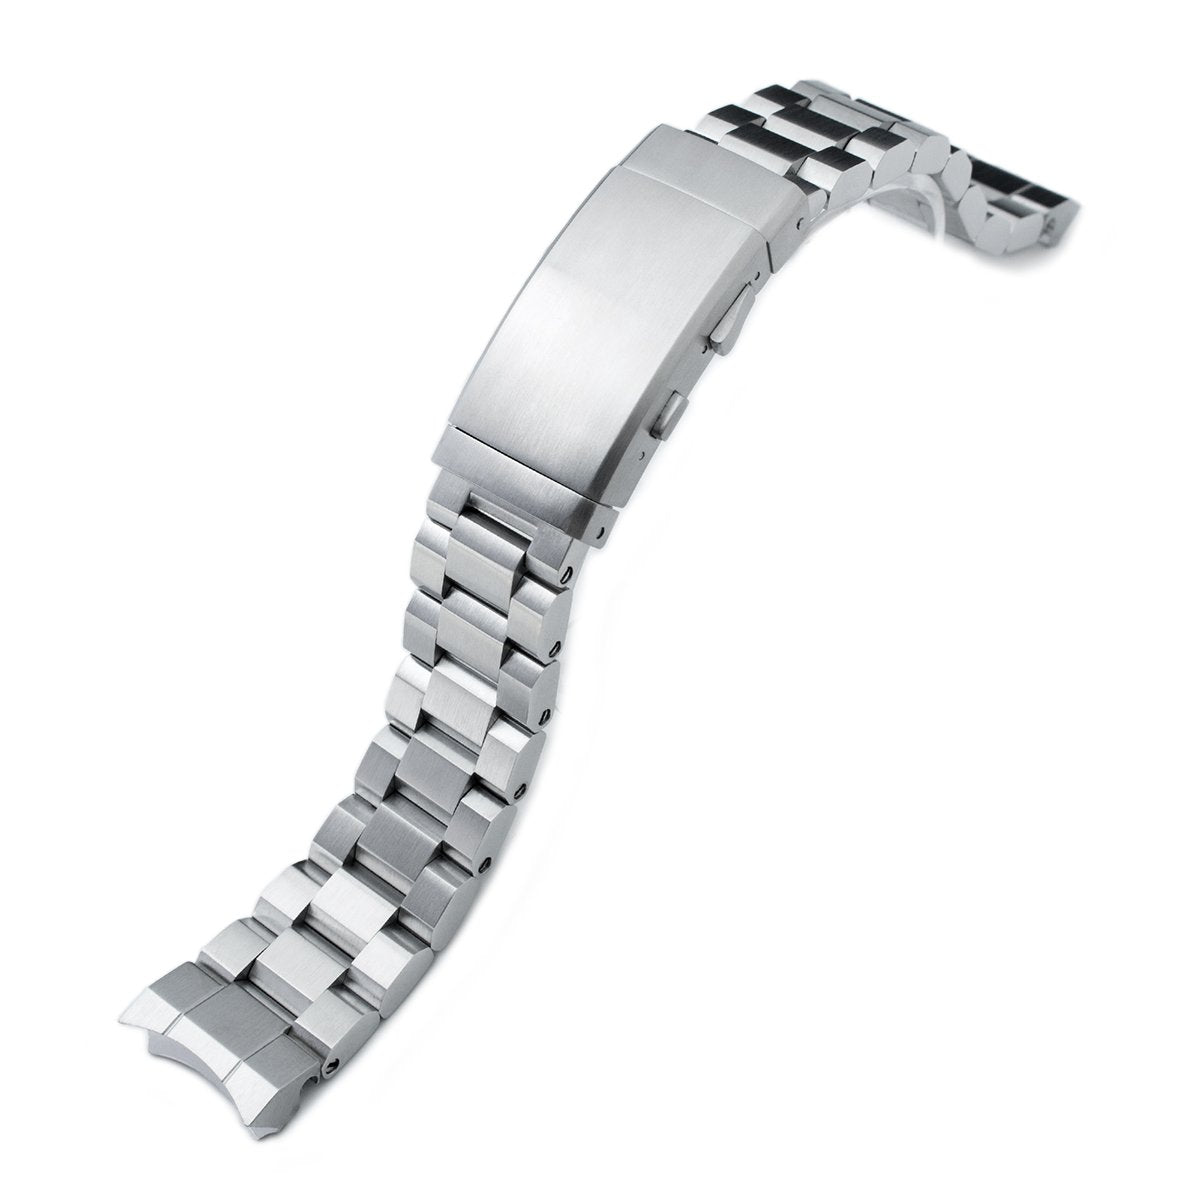 20mm Hexad 316L Stainless Steel Watch Band for Sumo SBDC001 Wetsuit Ratchet Buckle Strapcode Watch Bands